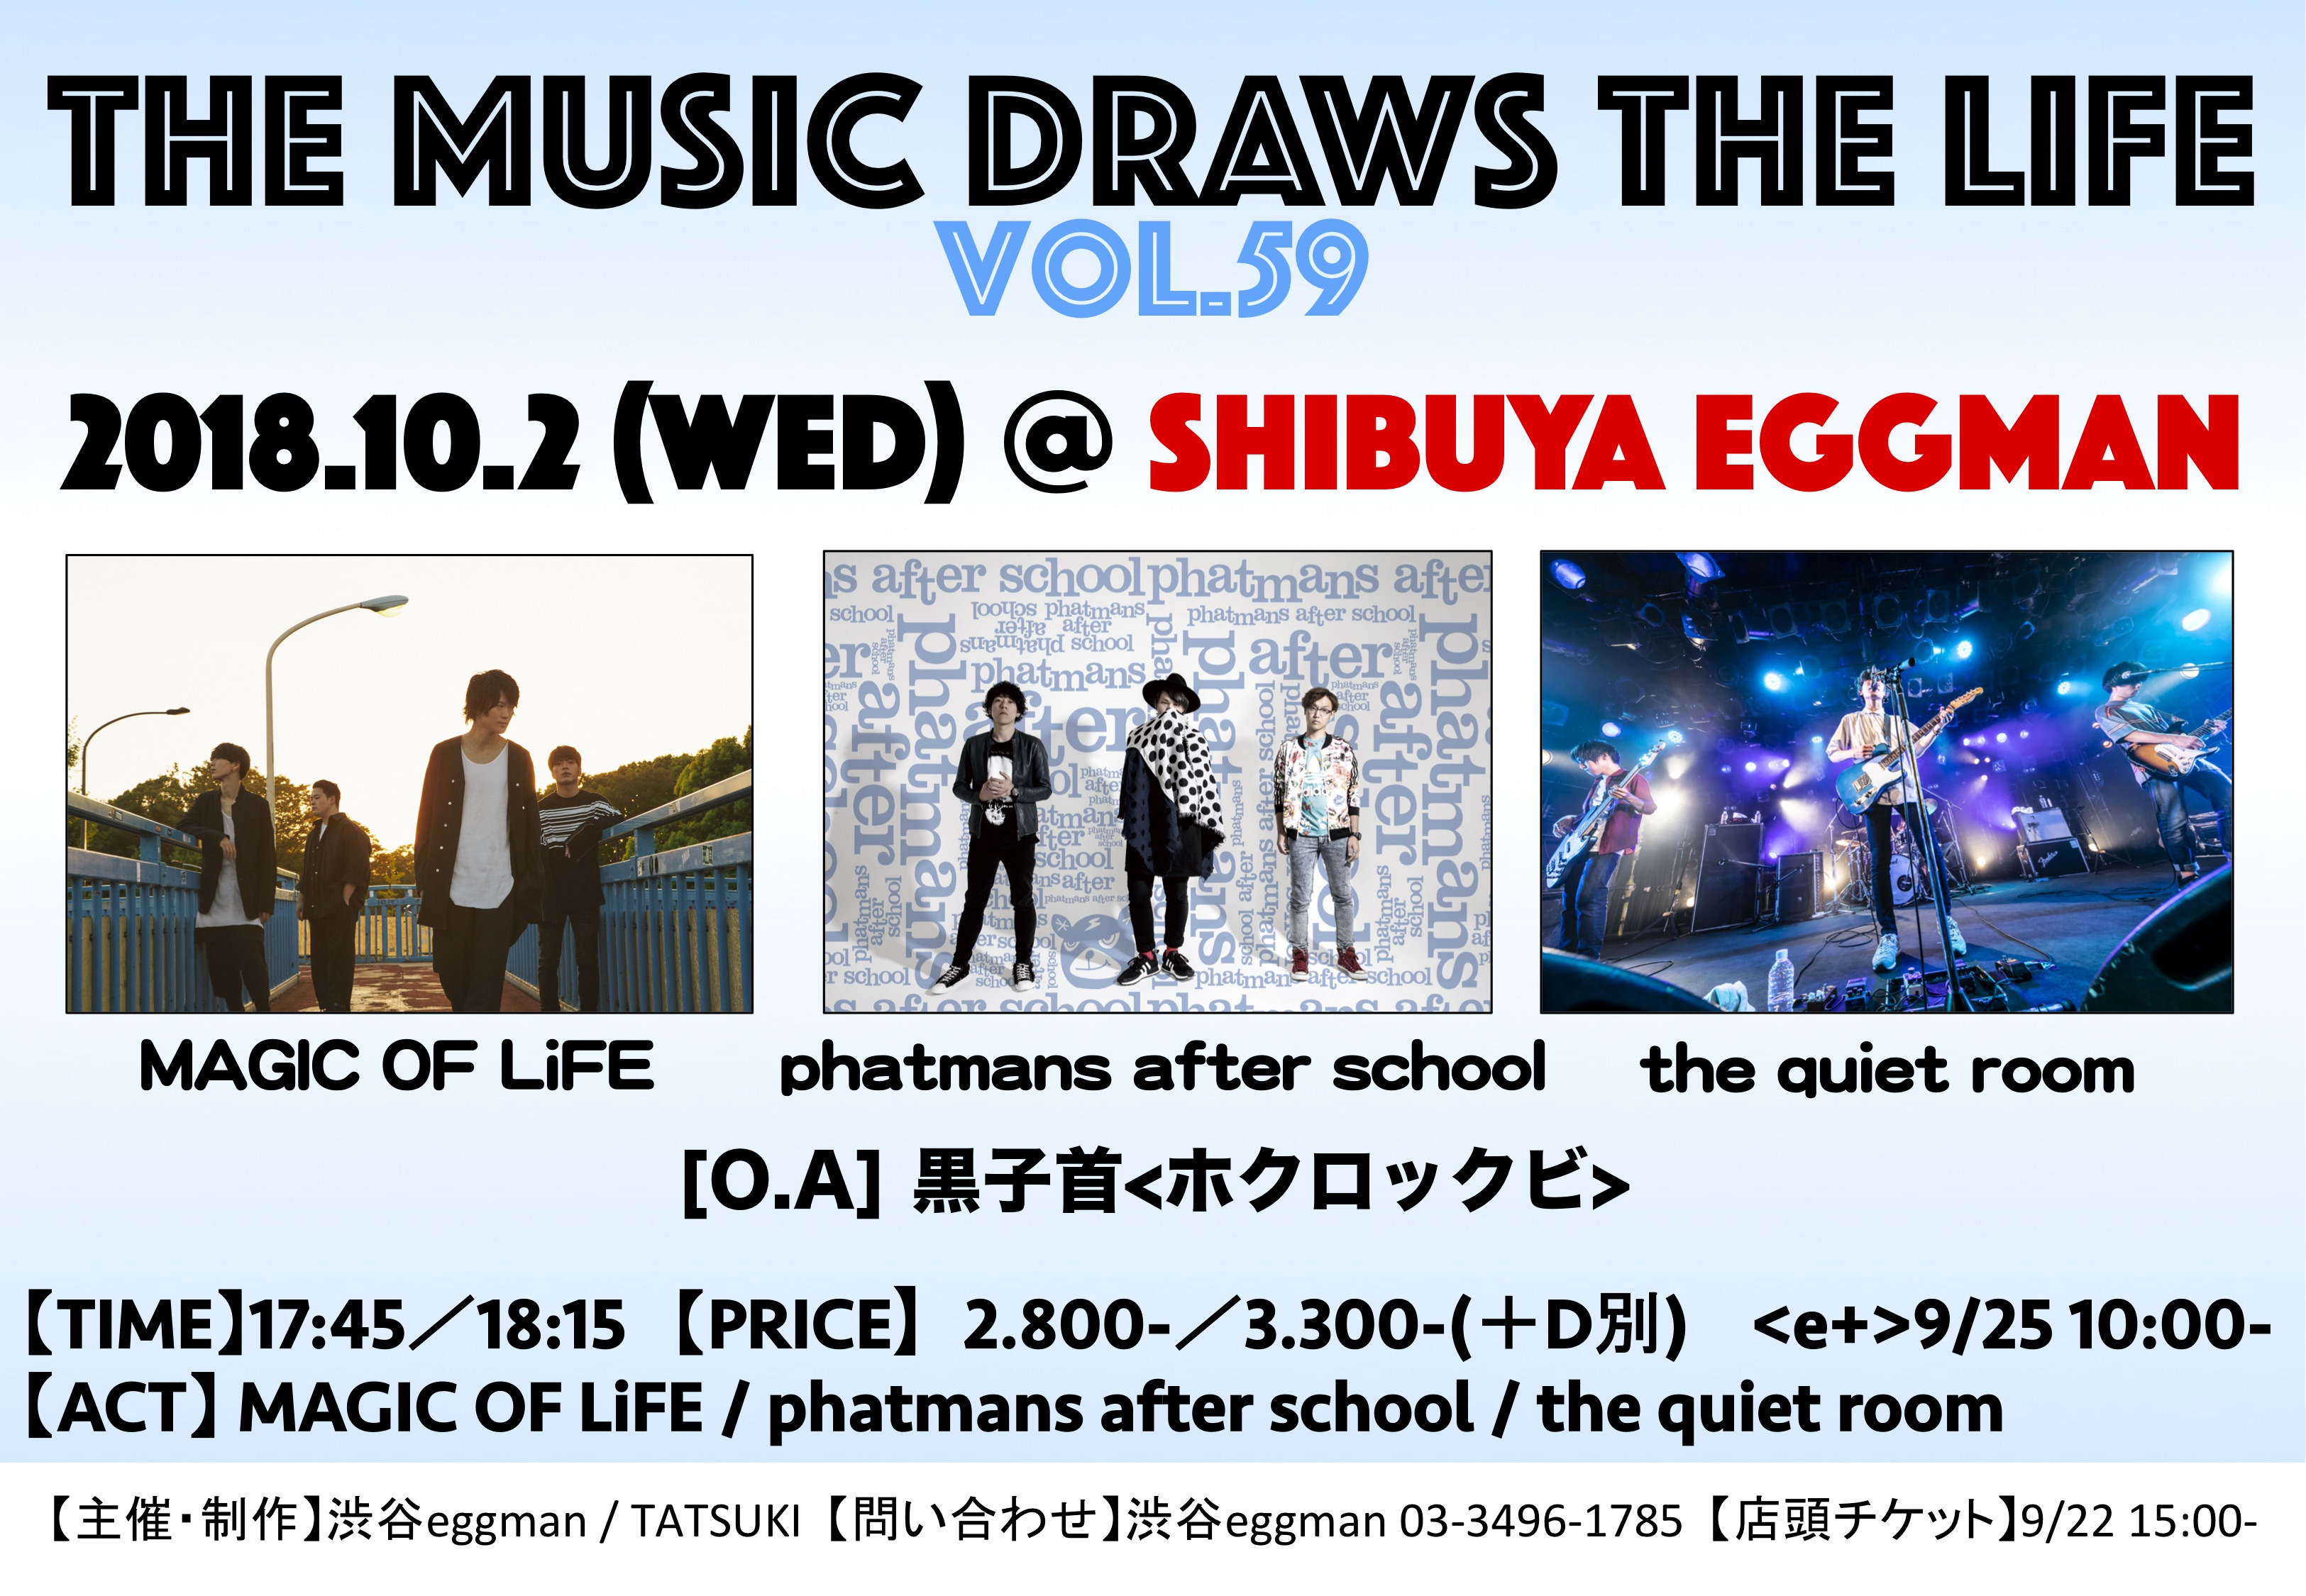 The Music Draws The Life Vol.59